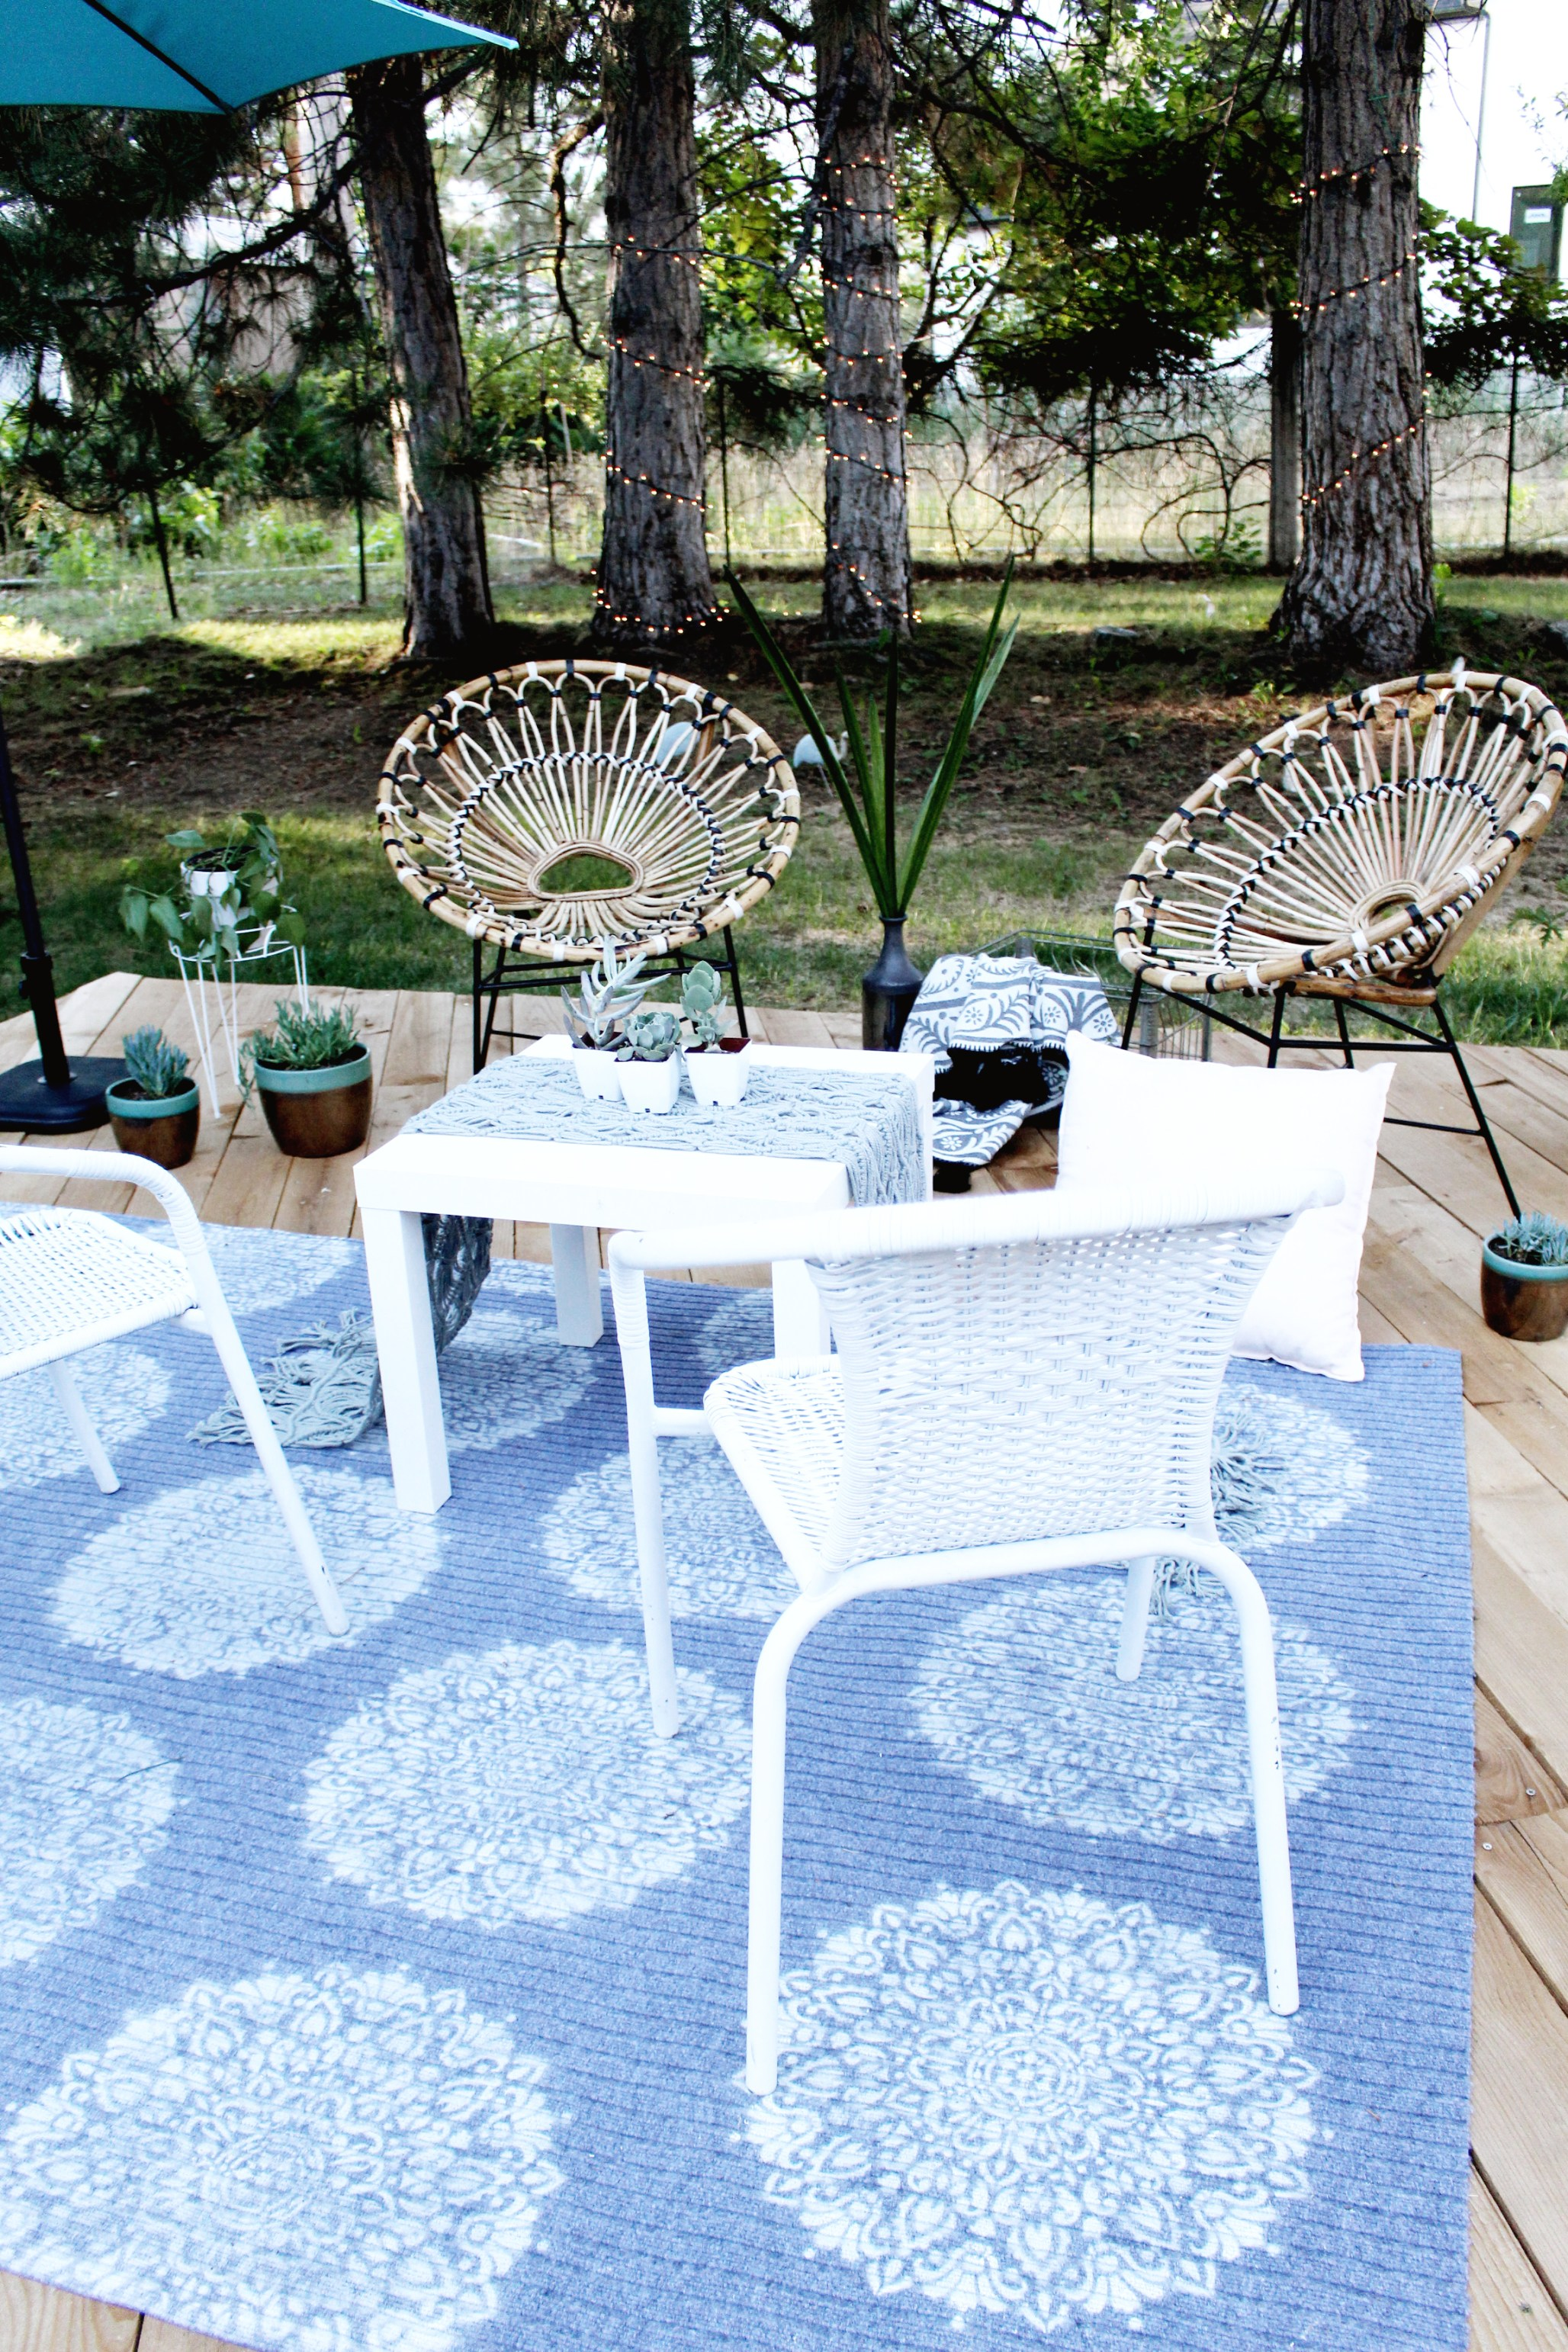 DIY stenciled and spray painted rugs for outdoors